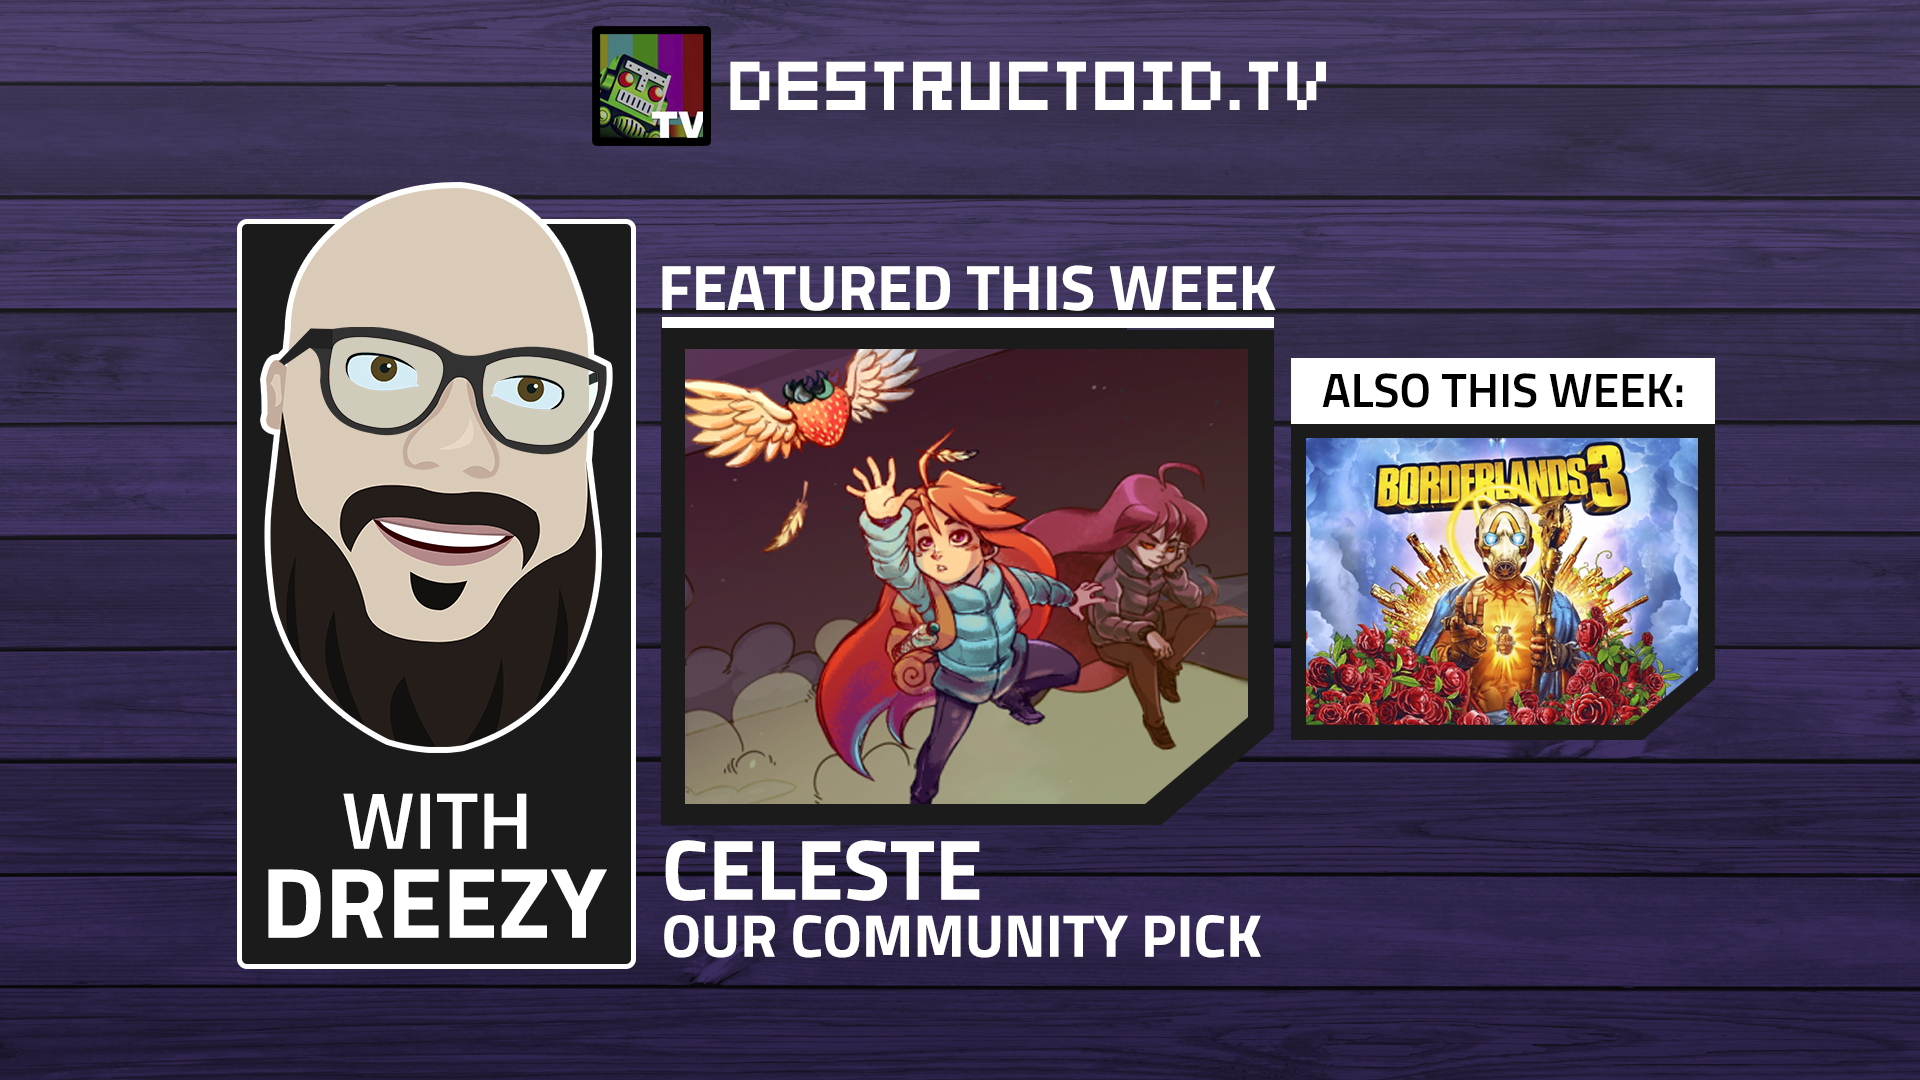 We're live again on Twitch this week with Celeste and more Borderlands 3! screenshot